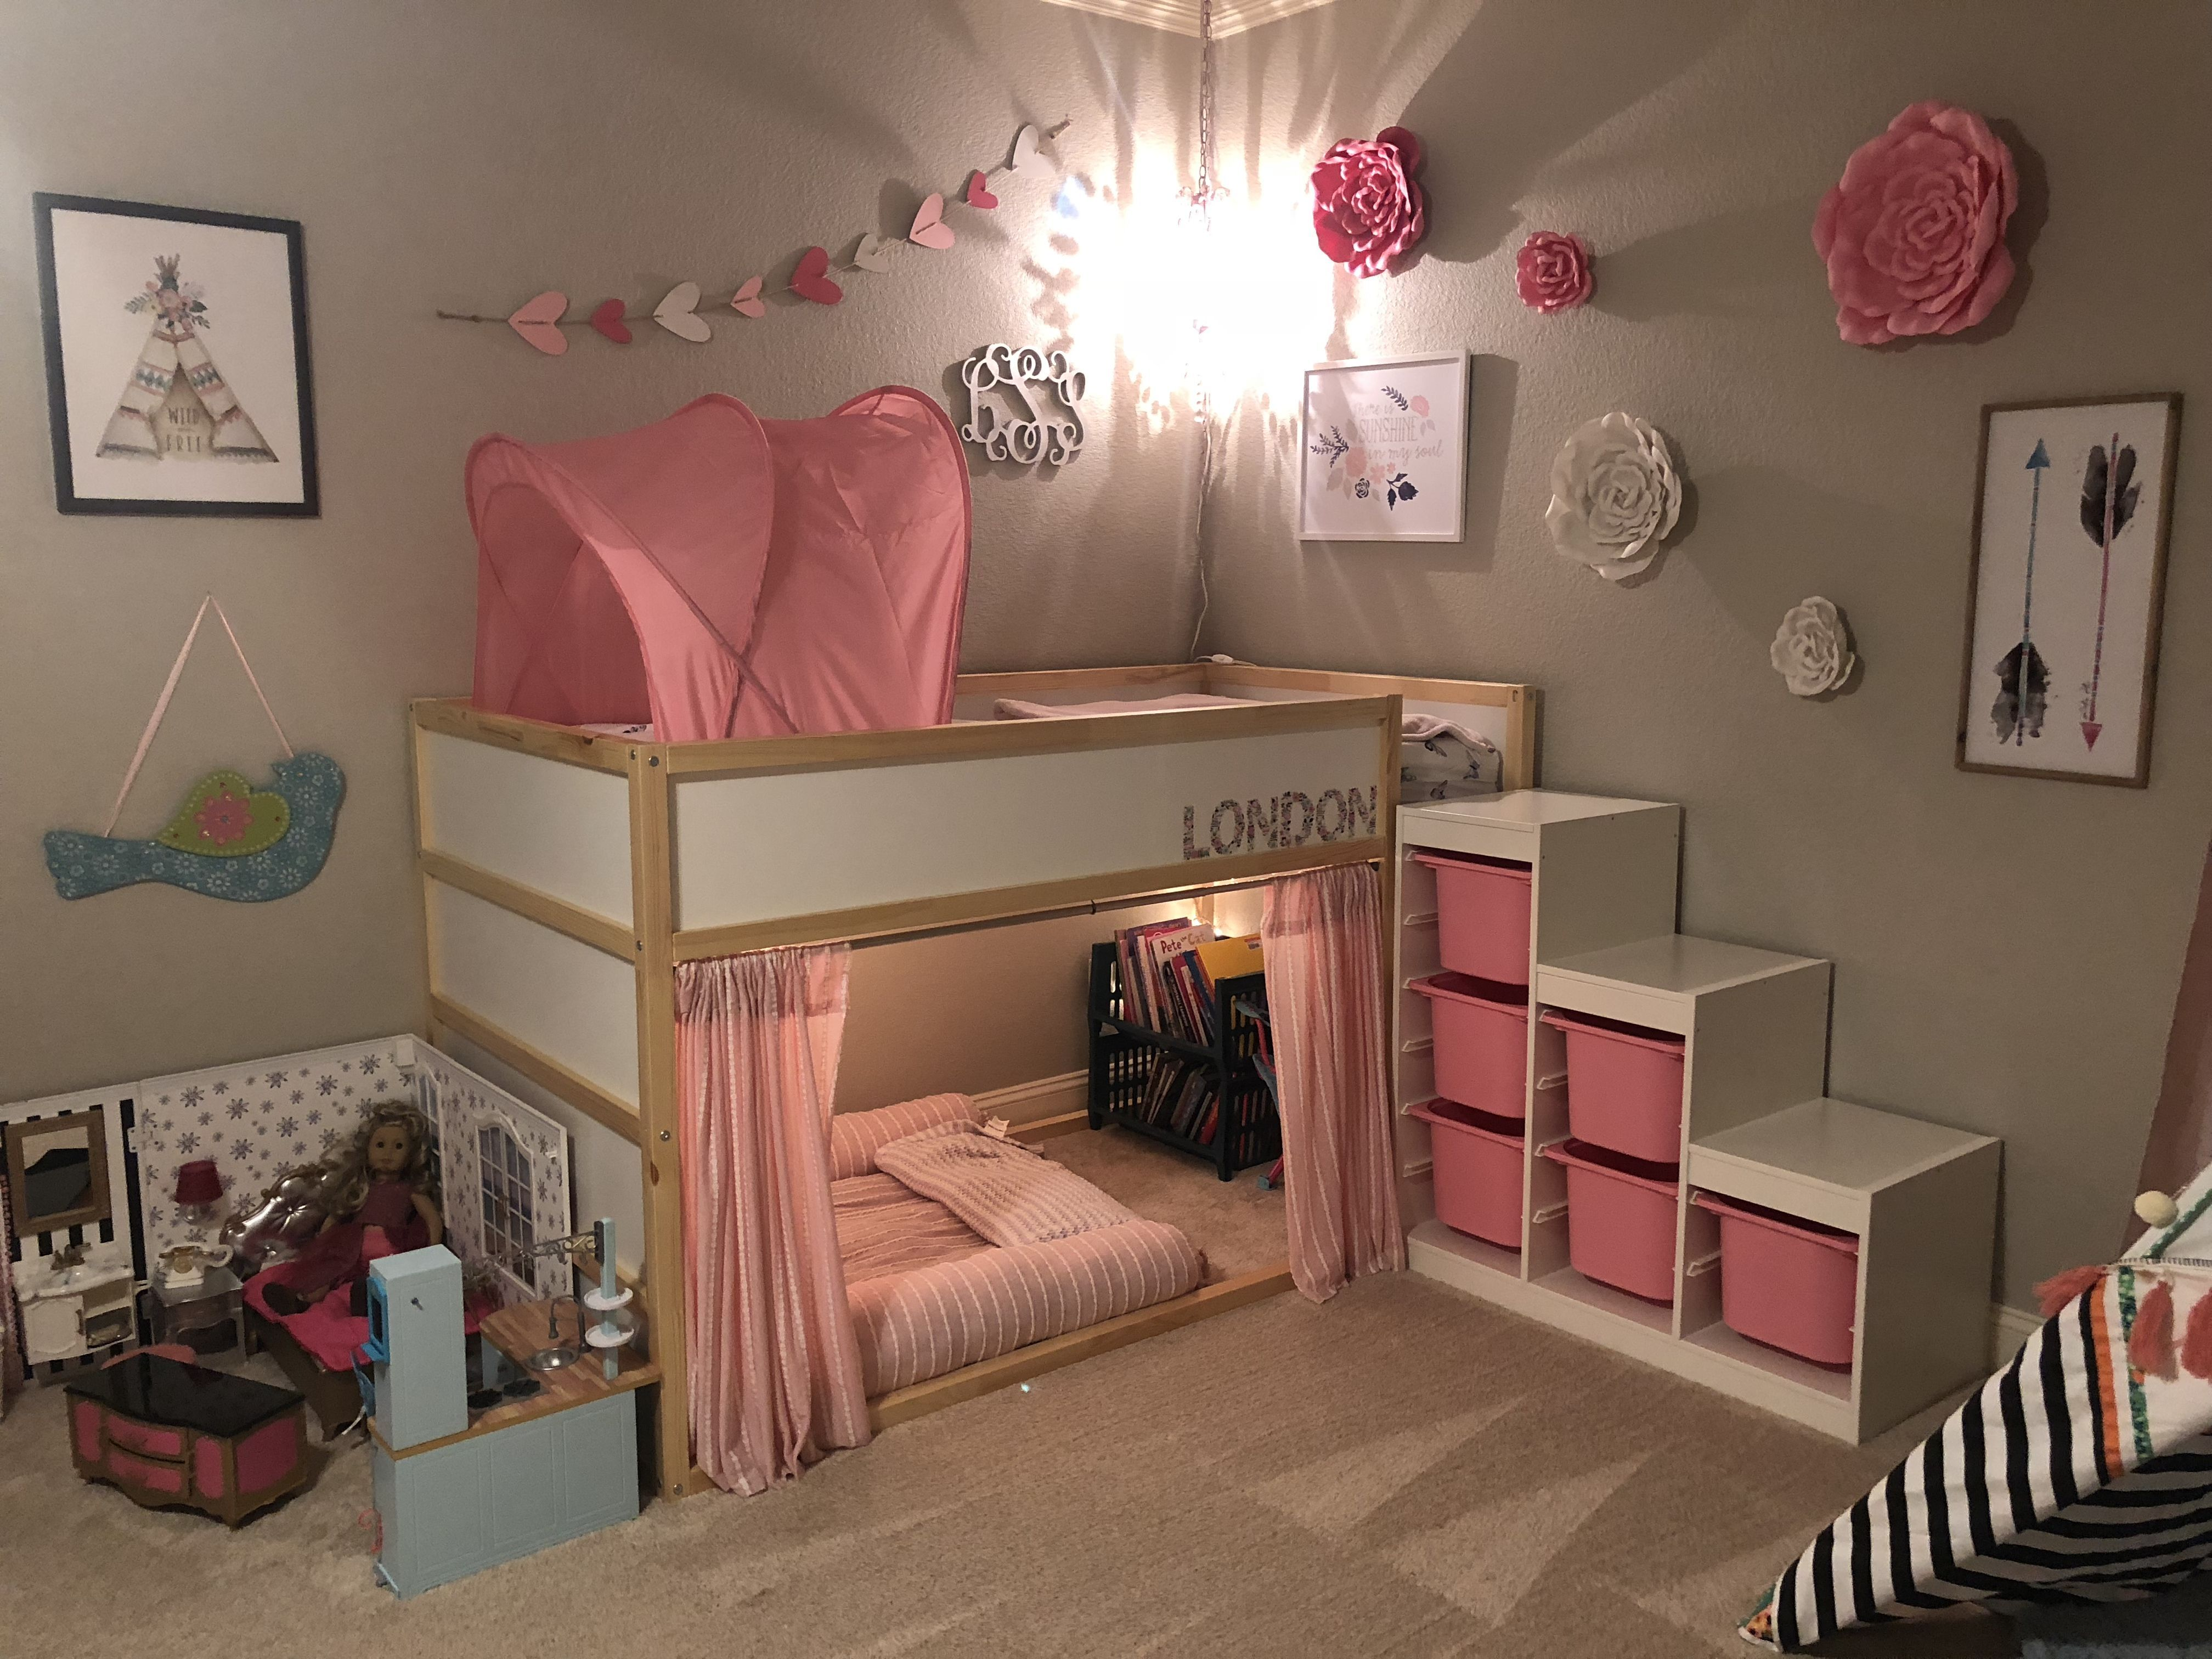 Most Up To Date No Cost Open Shelf That S So Nice In The Kitchen Ideas Deco Chambre Enfant Chambre Enfant Deco Chambre